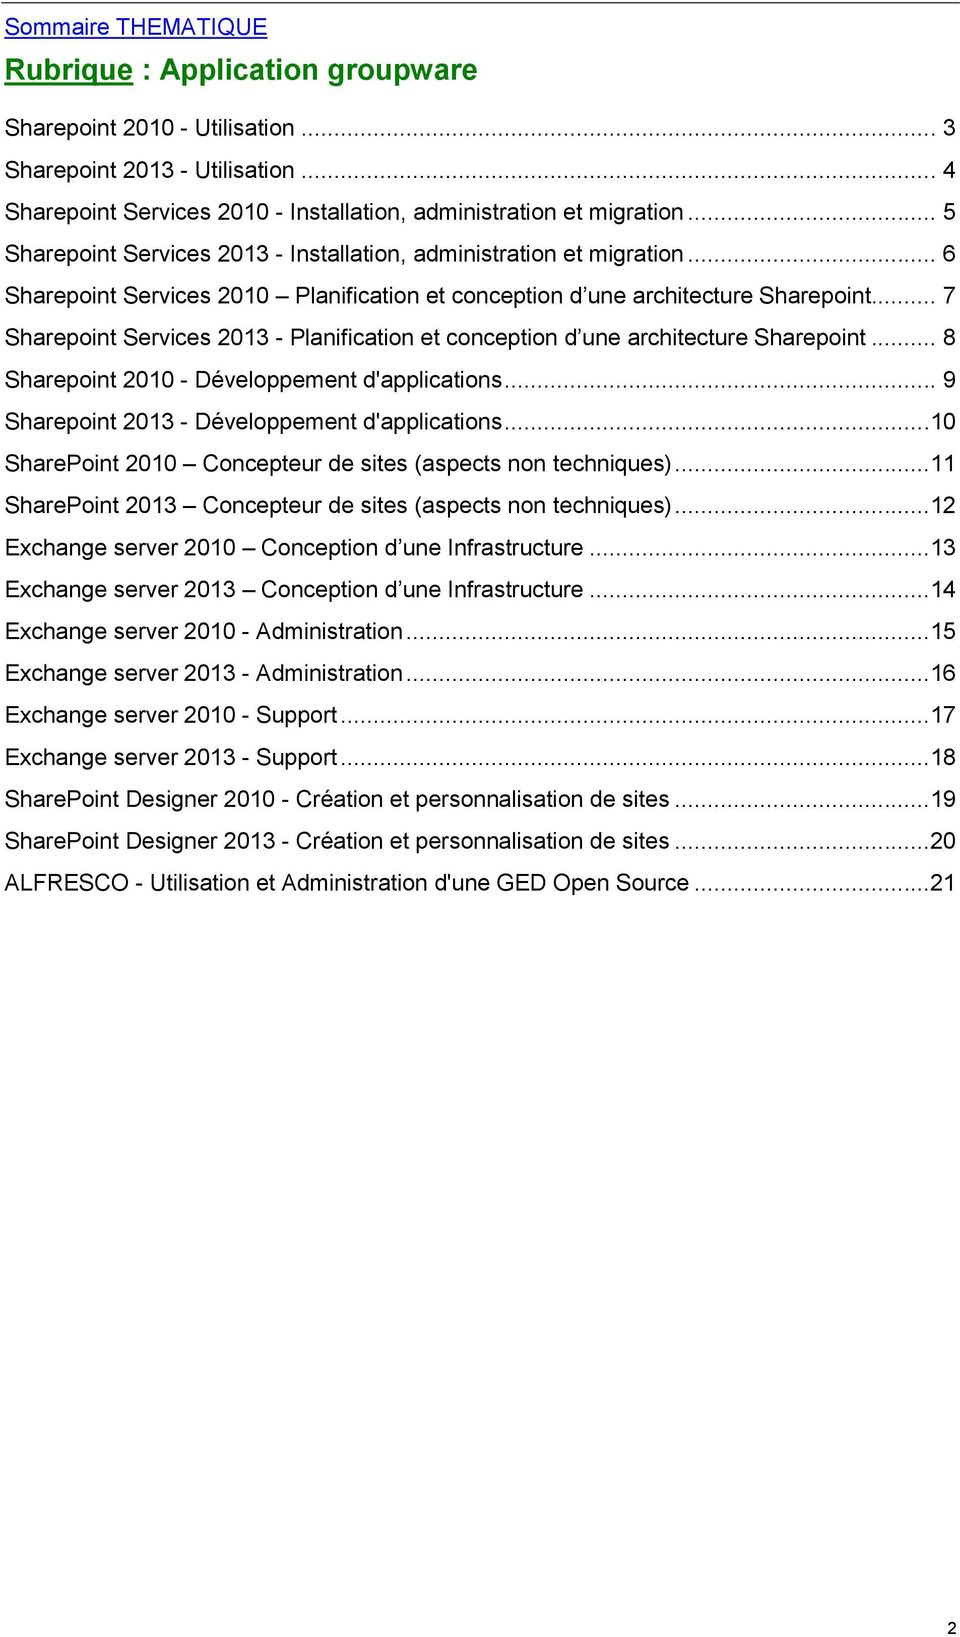 .. 7 Sharepoint Services 2013 - Planification et conception d une architecture Sharepoint... 8 Sharepoint 2010 - Développement d'applications... 9 Sharepoint 2013 - Développement d'applications.